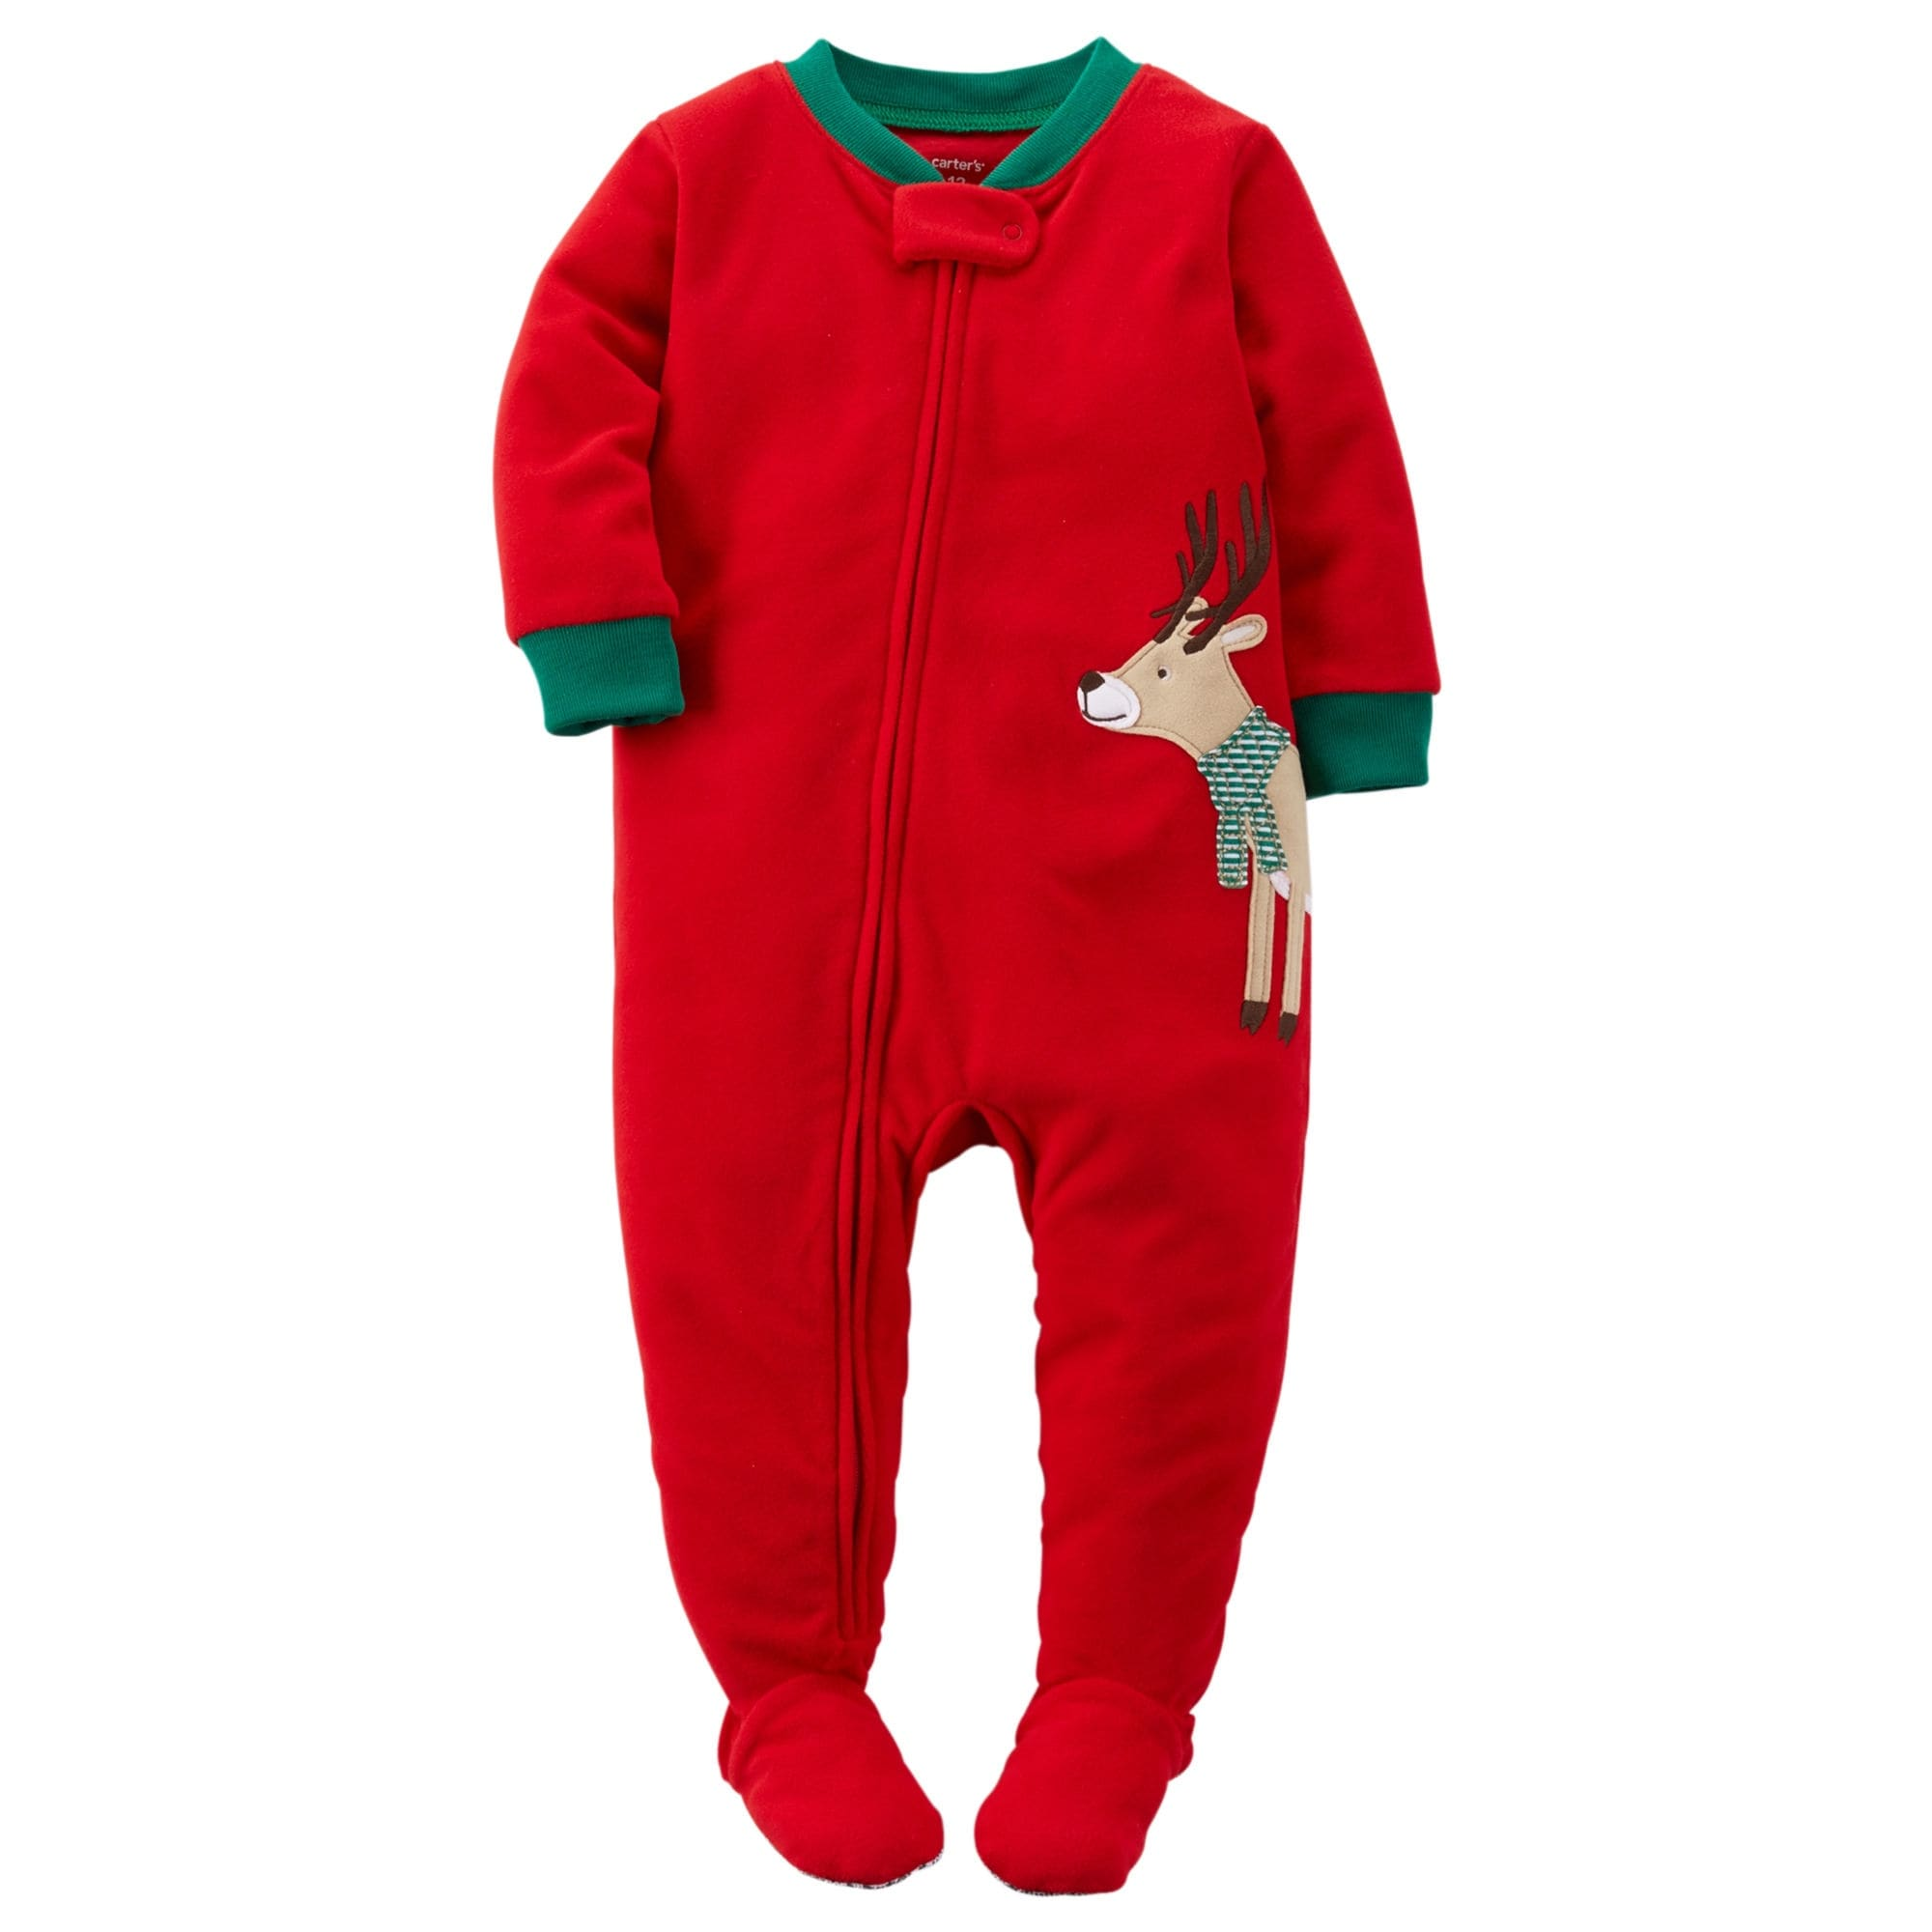 80db7c5eb978 Shop Carter s Baby Boys  Holiday Microfleece One Piece Footed ...